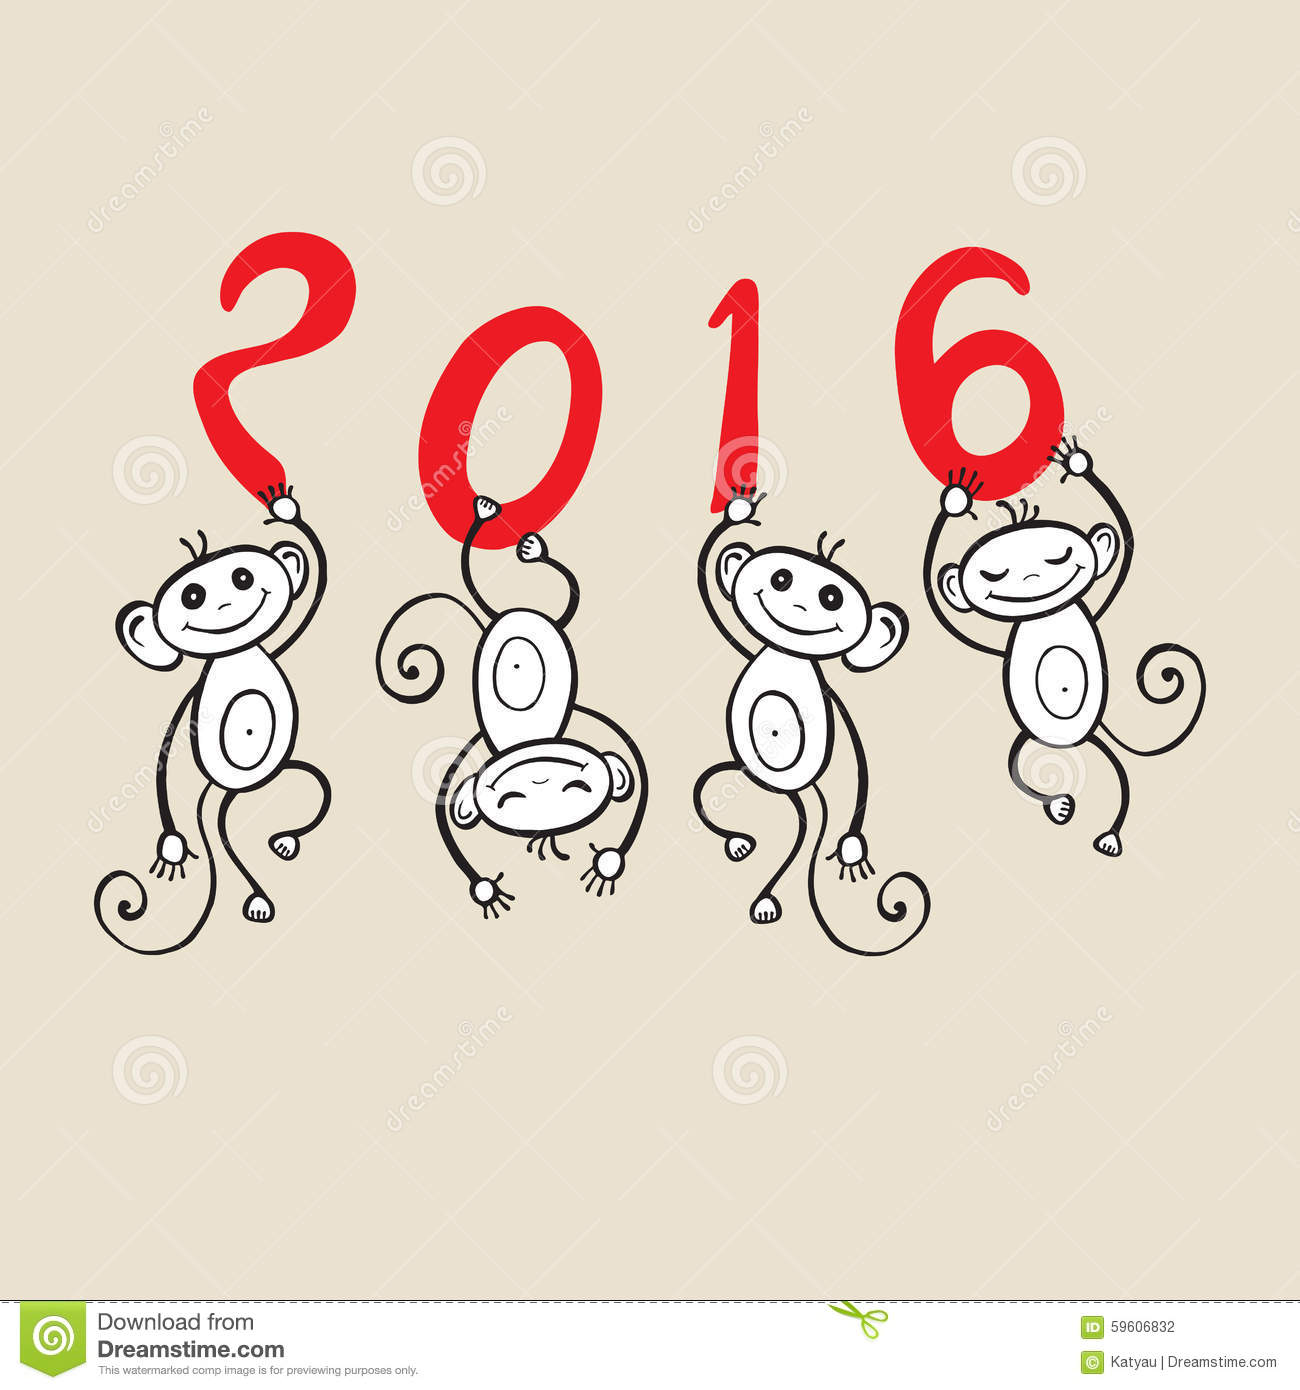 chinese zodiac monkey - Chinese New Year 2016 Animal